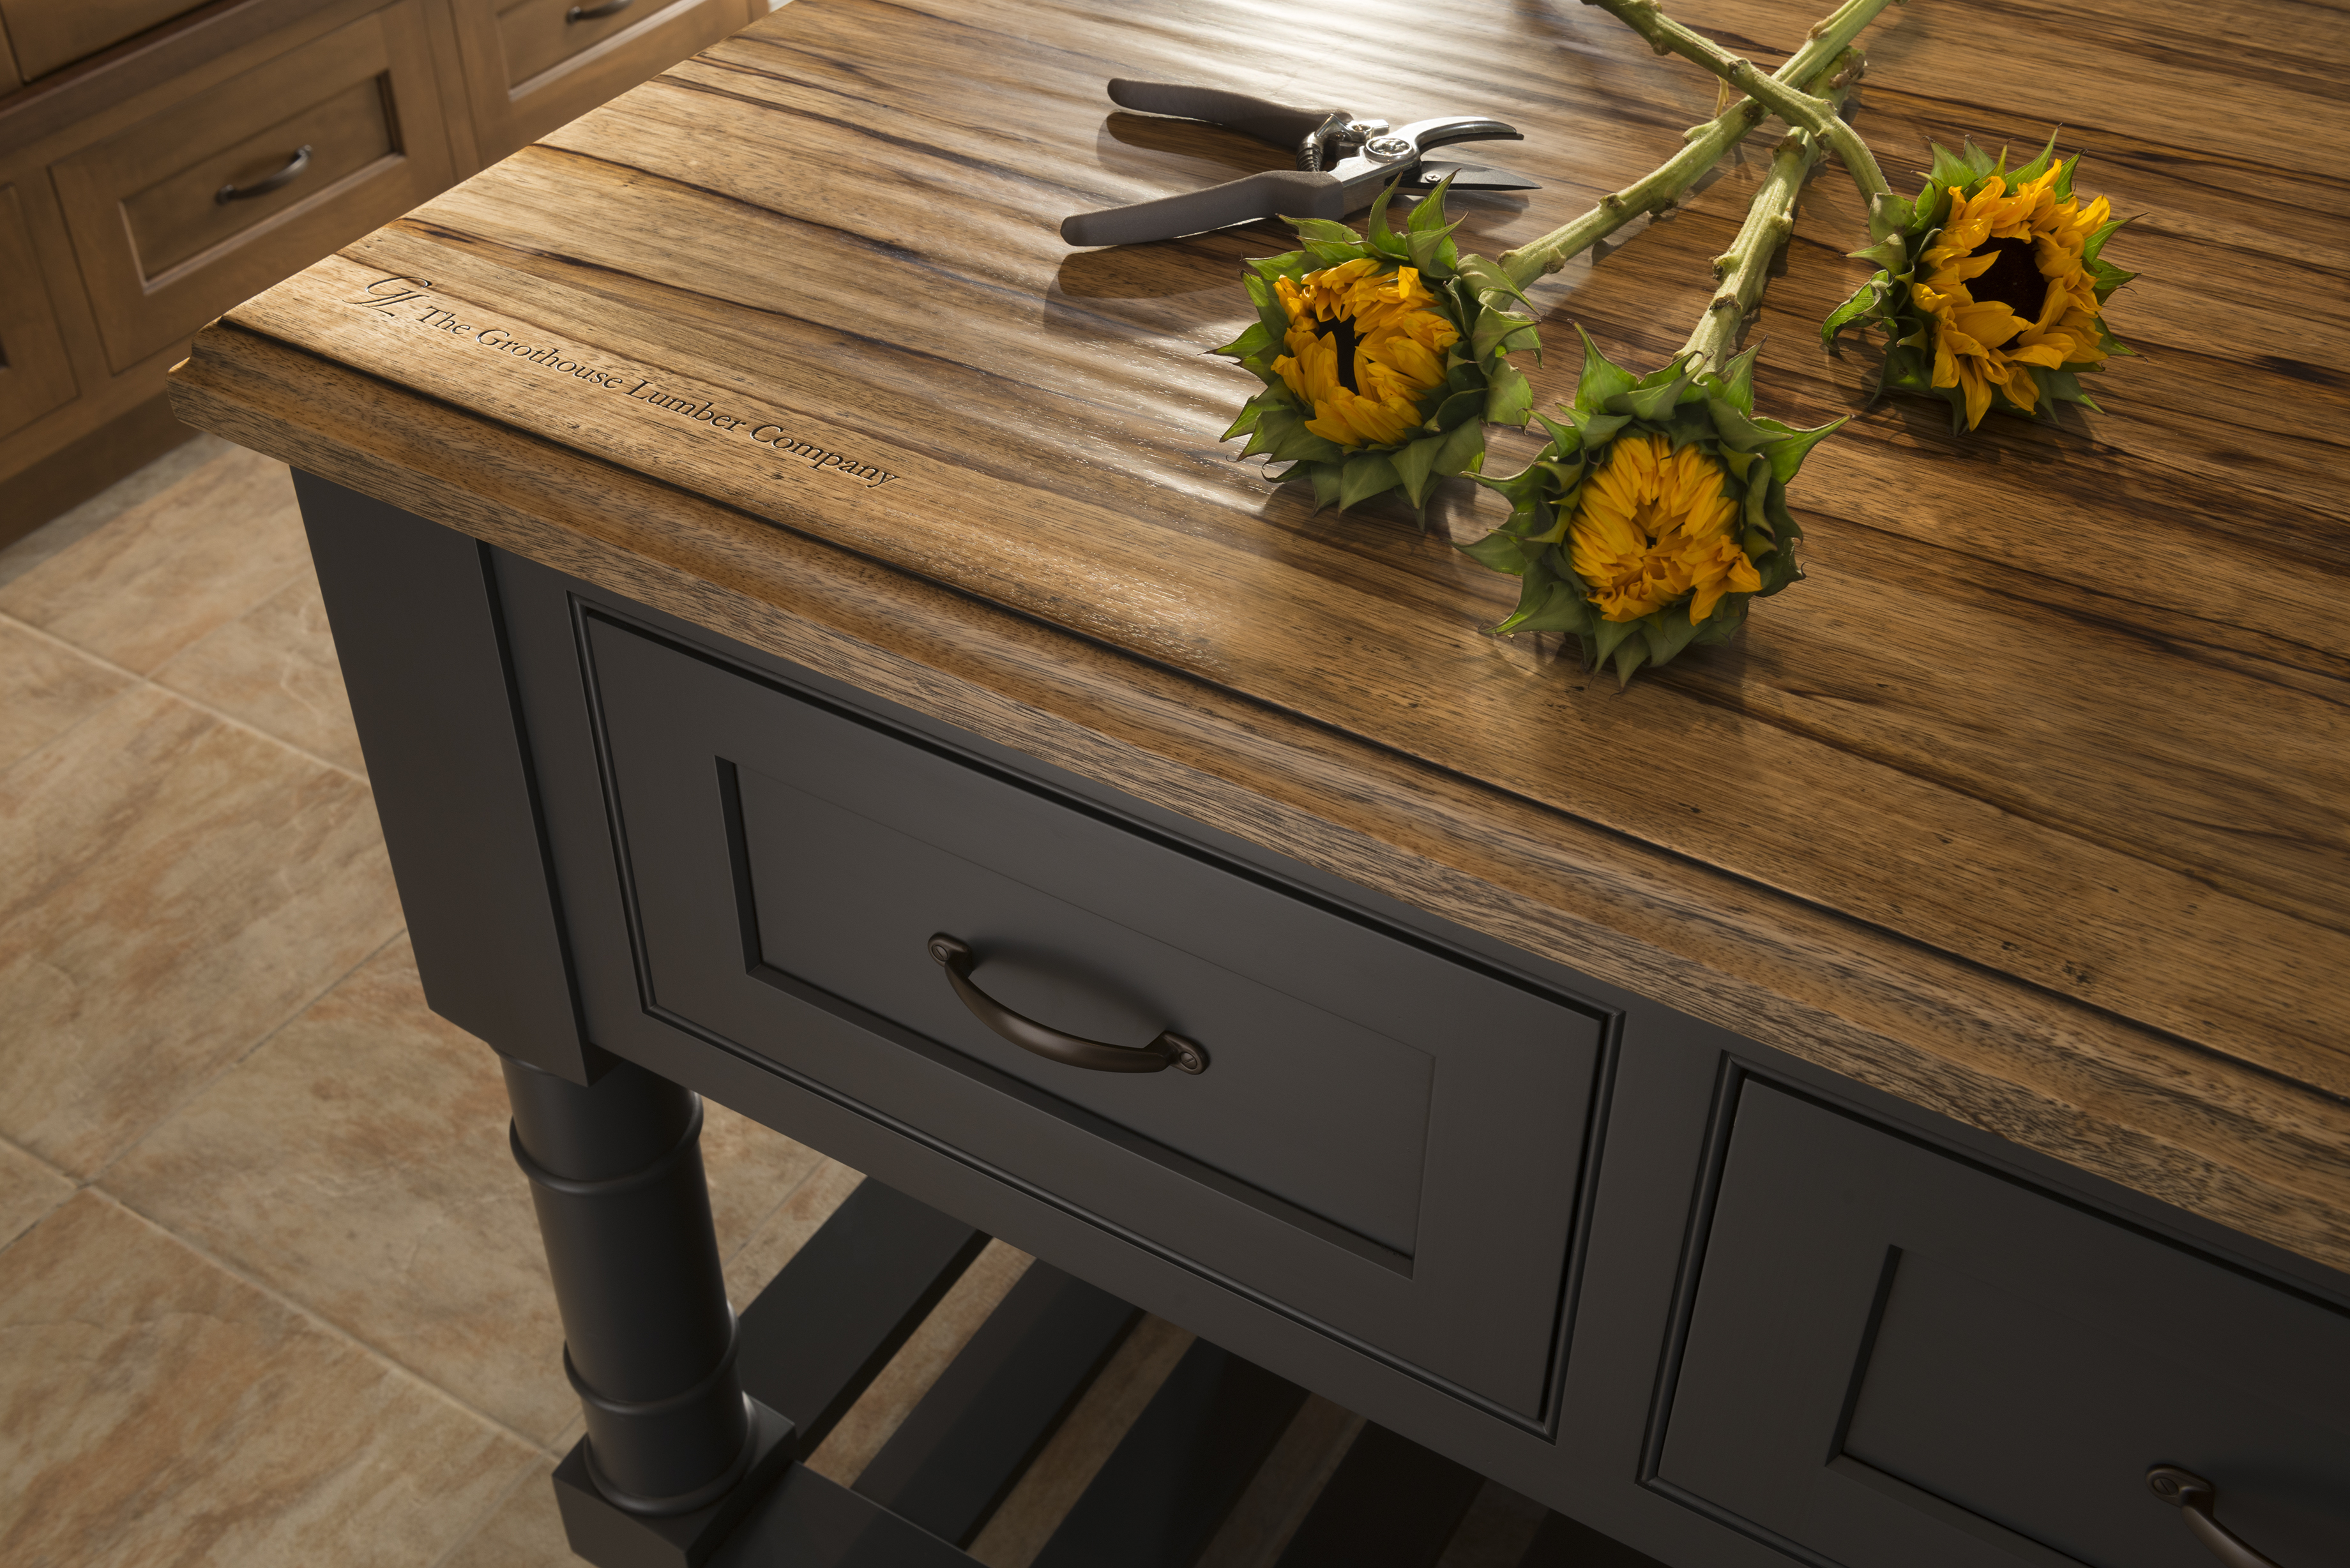 Saxon Wood™ Countertop exclusively available at Grothouse